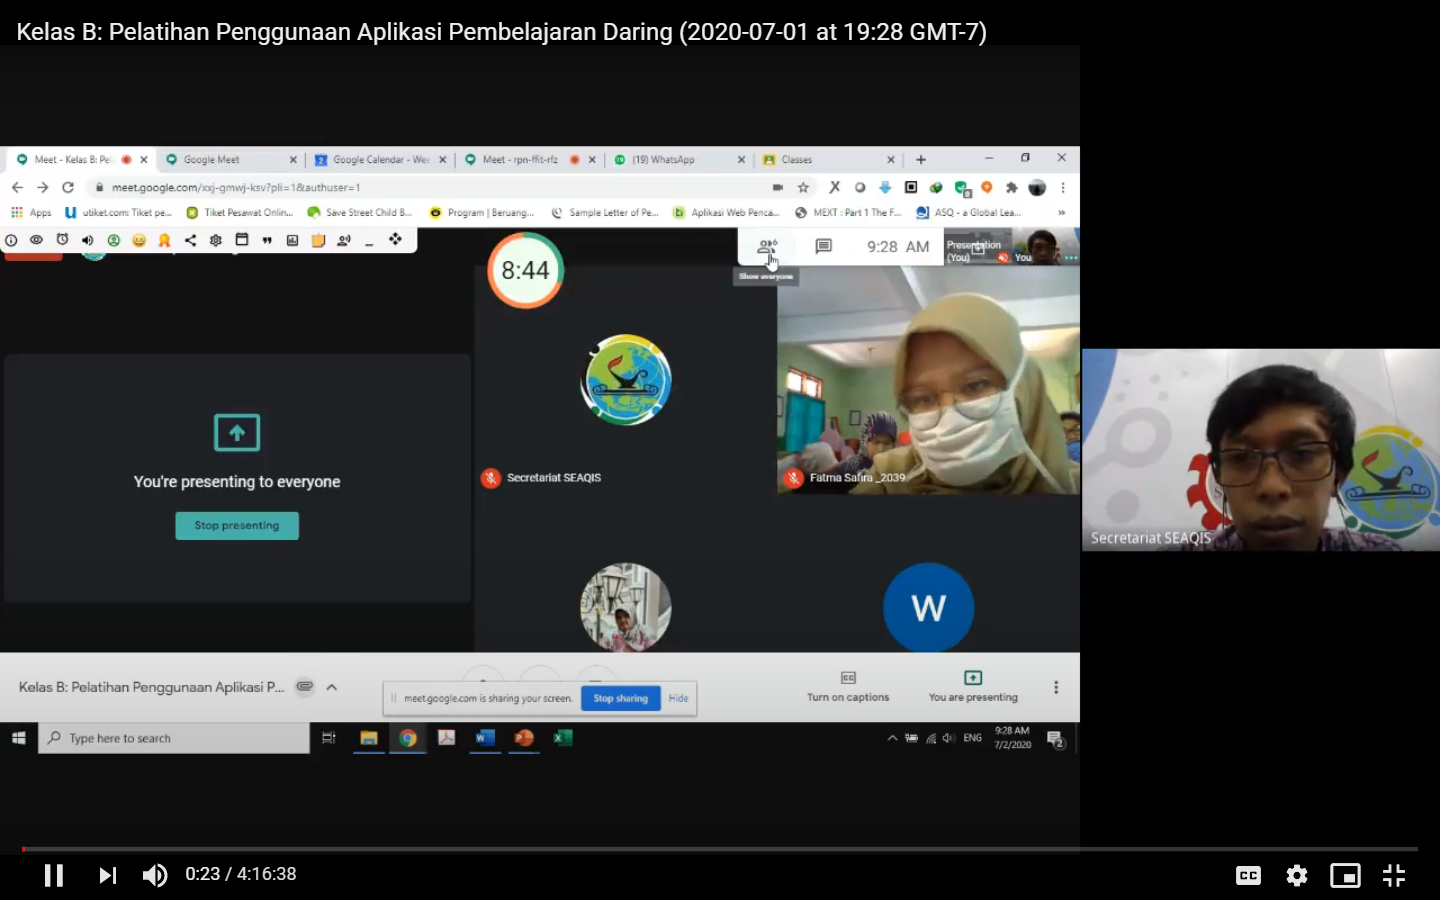 Online Training: The Use of Online Learning Application for Primary and Secondary Teachers in Al-Muqorrobin Foundation Depok